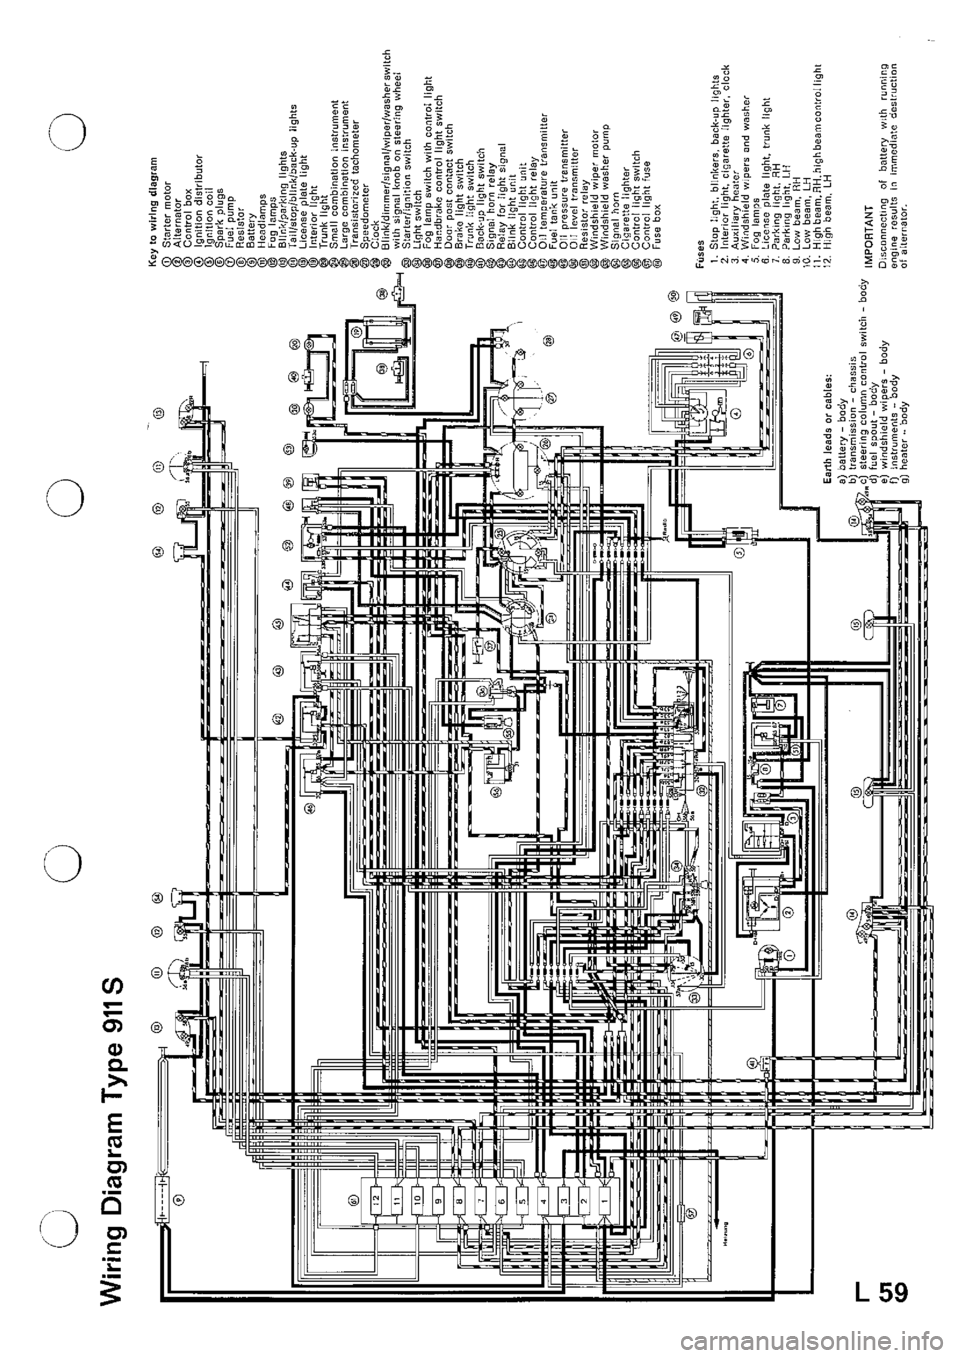 Porsche Wiring Diagram Results Electrical Diagrams 1974 911 Schematic Evinrude Boat Motor 1970 1 G